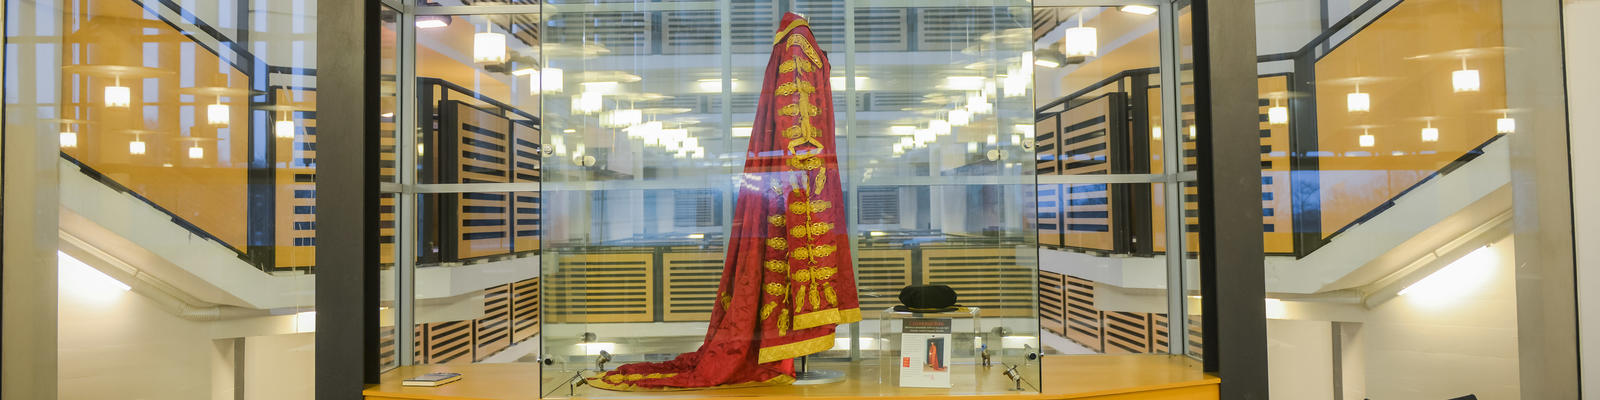 Lancaster University Chancellor's robes in glass cabinet within the Library building